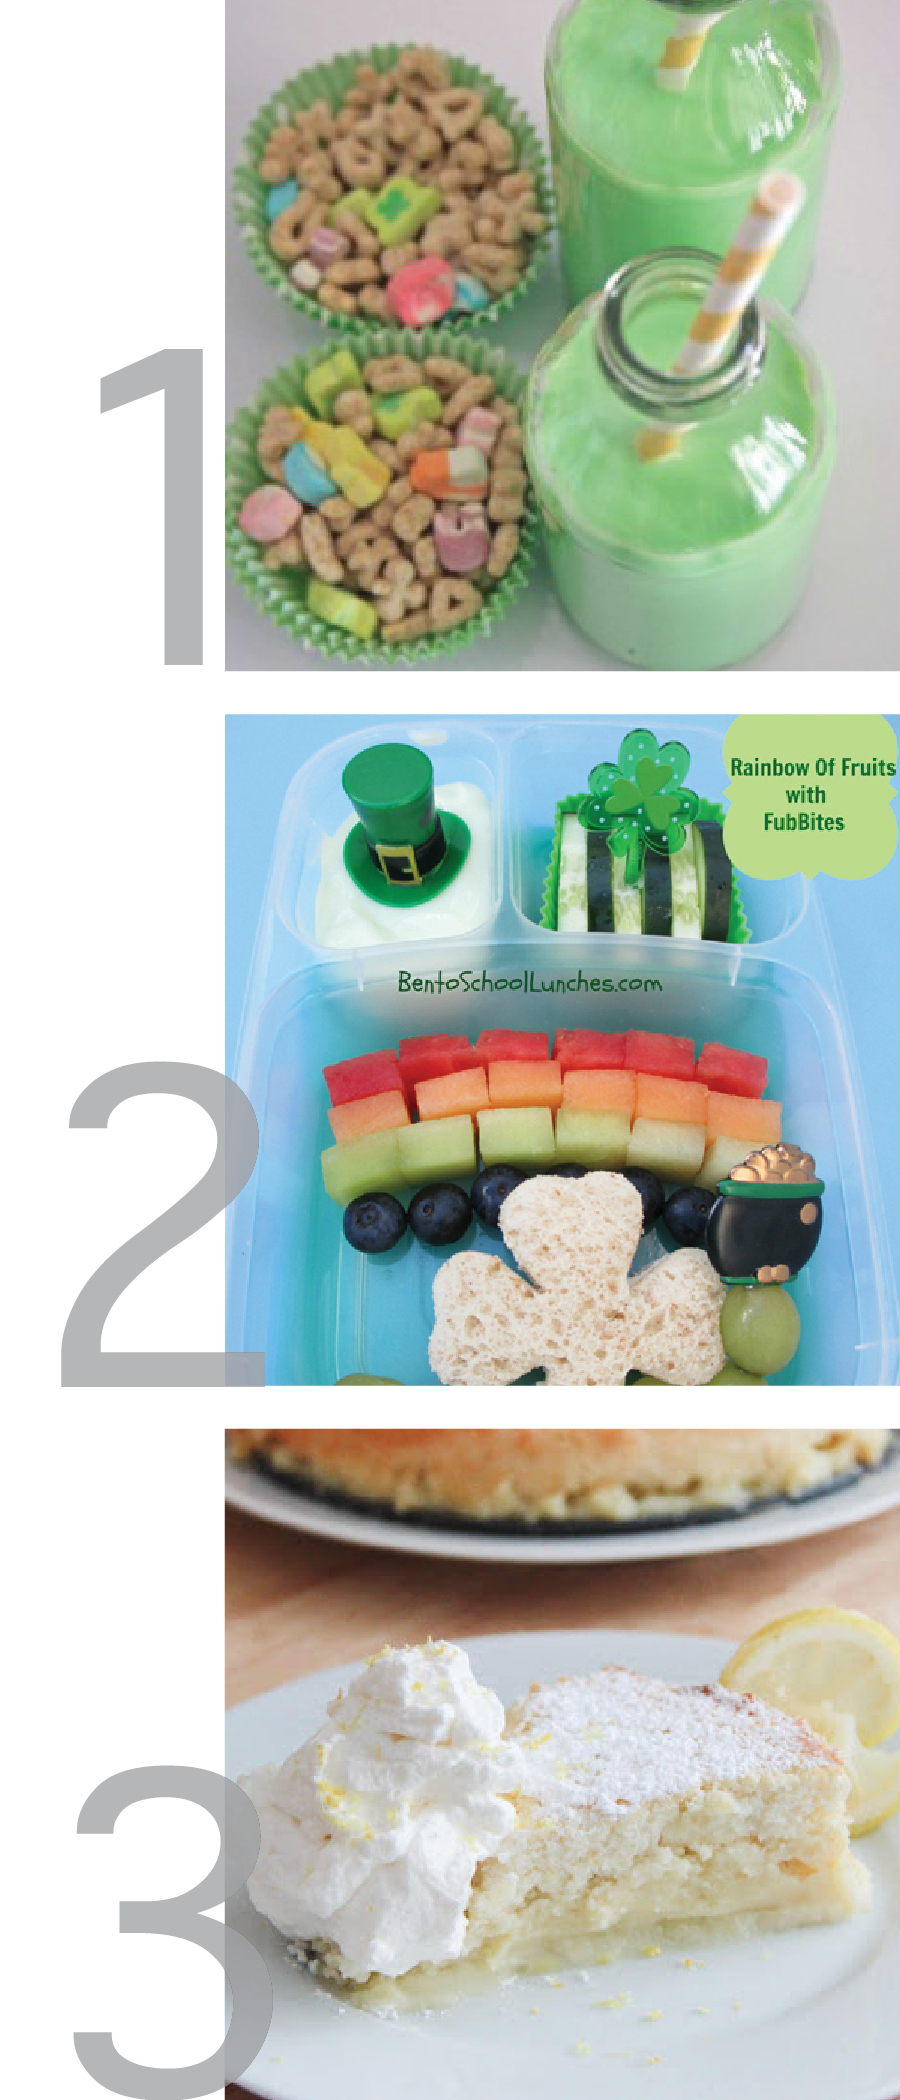 this photo is a graphic of images of the following st. patrick's day recipes, leprechaun breakfast, st. patrick's day bento lunch box and irish lemon pudding